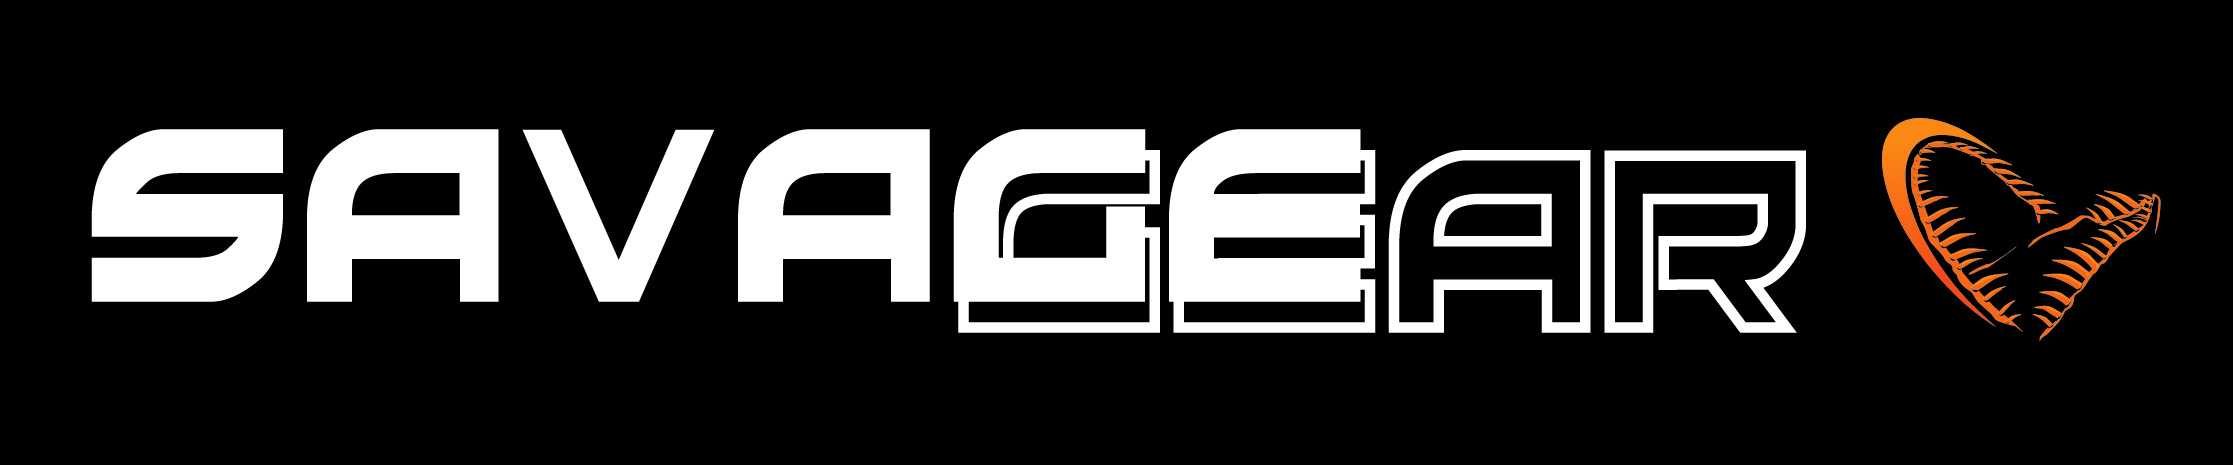 Savage Gear Logo